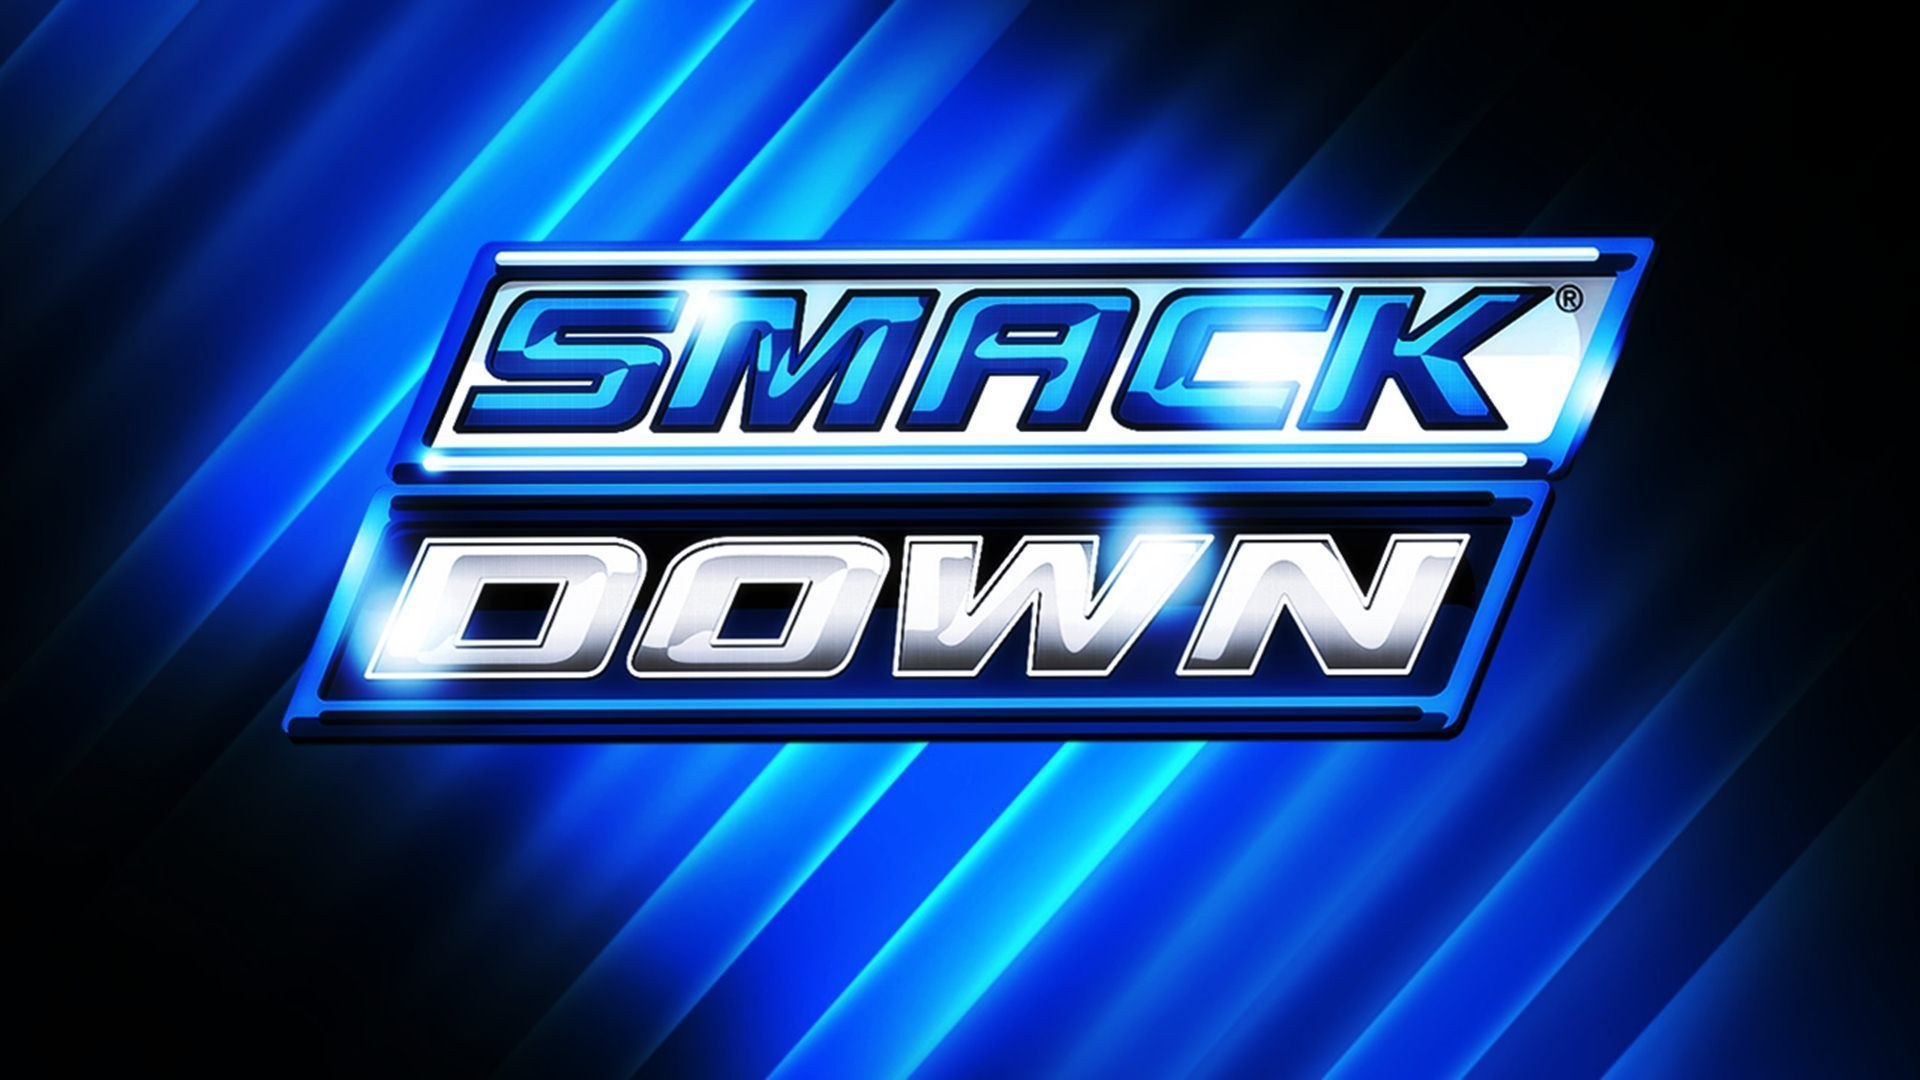 WWE SmackDown HD Images Get Free Top Quality For Your Desktop PC Background Ios Or Android Mobile Phones At WOWHDBackgro